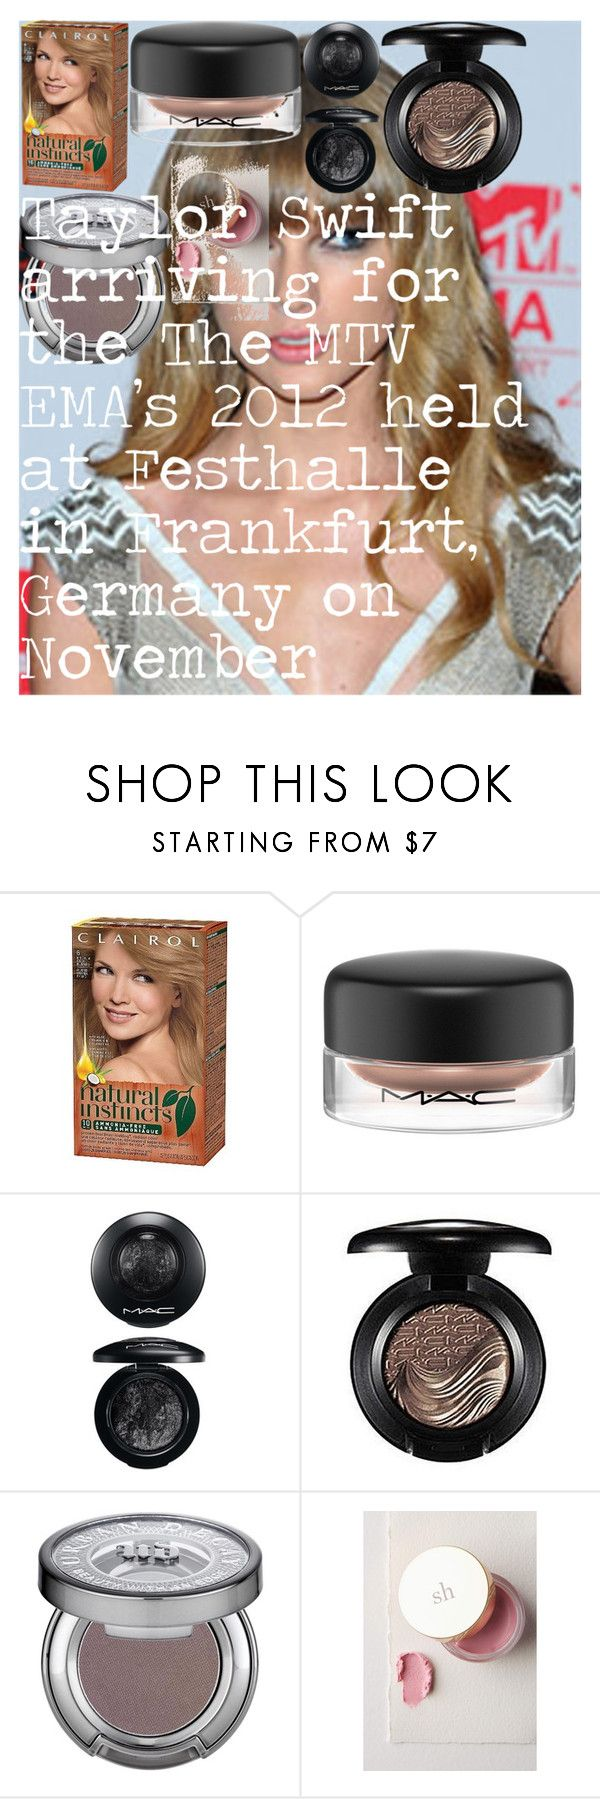 """""""Taylor Swift arriving for the The MTV EMA's 2012 held at Festhalle in Frankfurt, Germany on November 11, 2012."""" by oroartye-1 on Polyvore featuring beauty, MAC Cosmetics, Urban Decay and Sara Happ"""